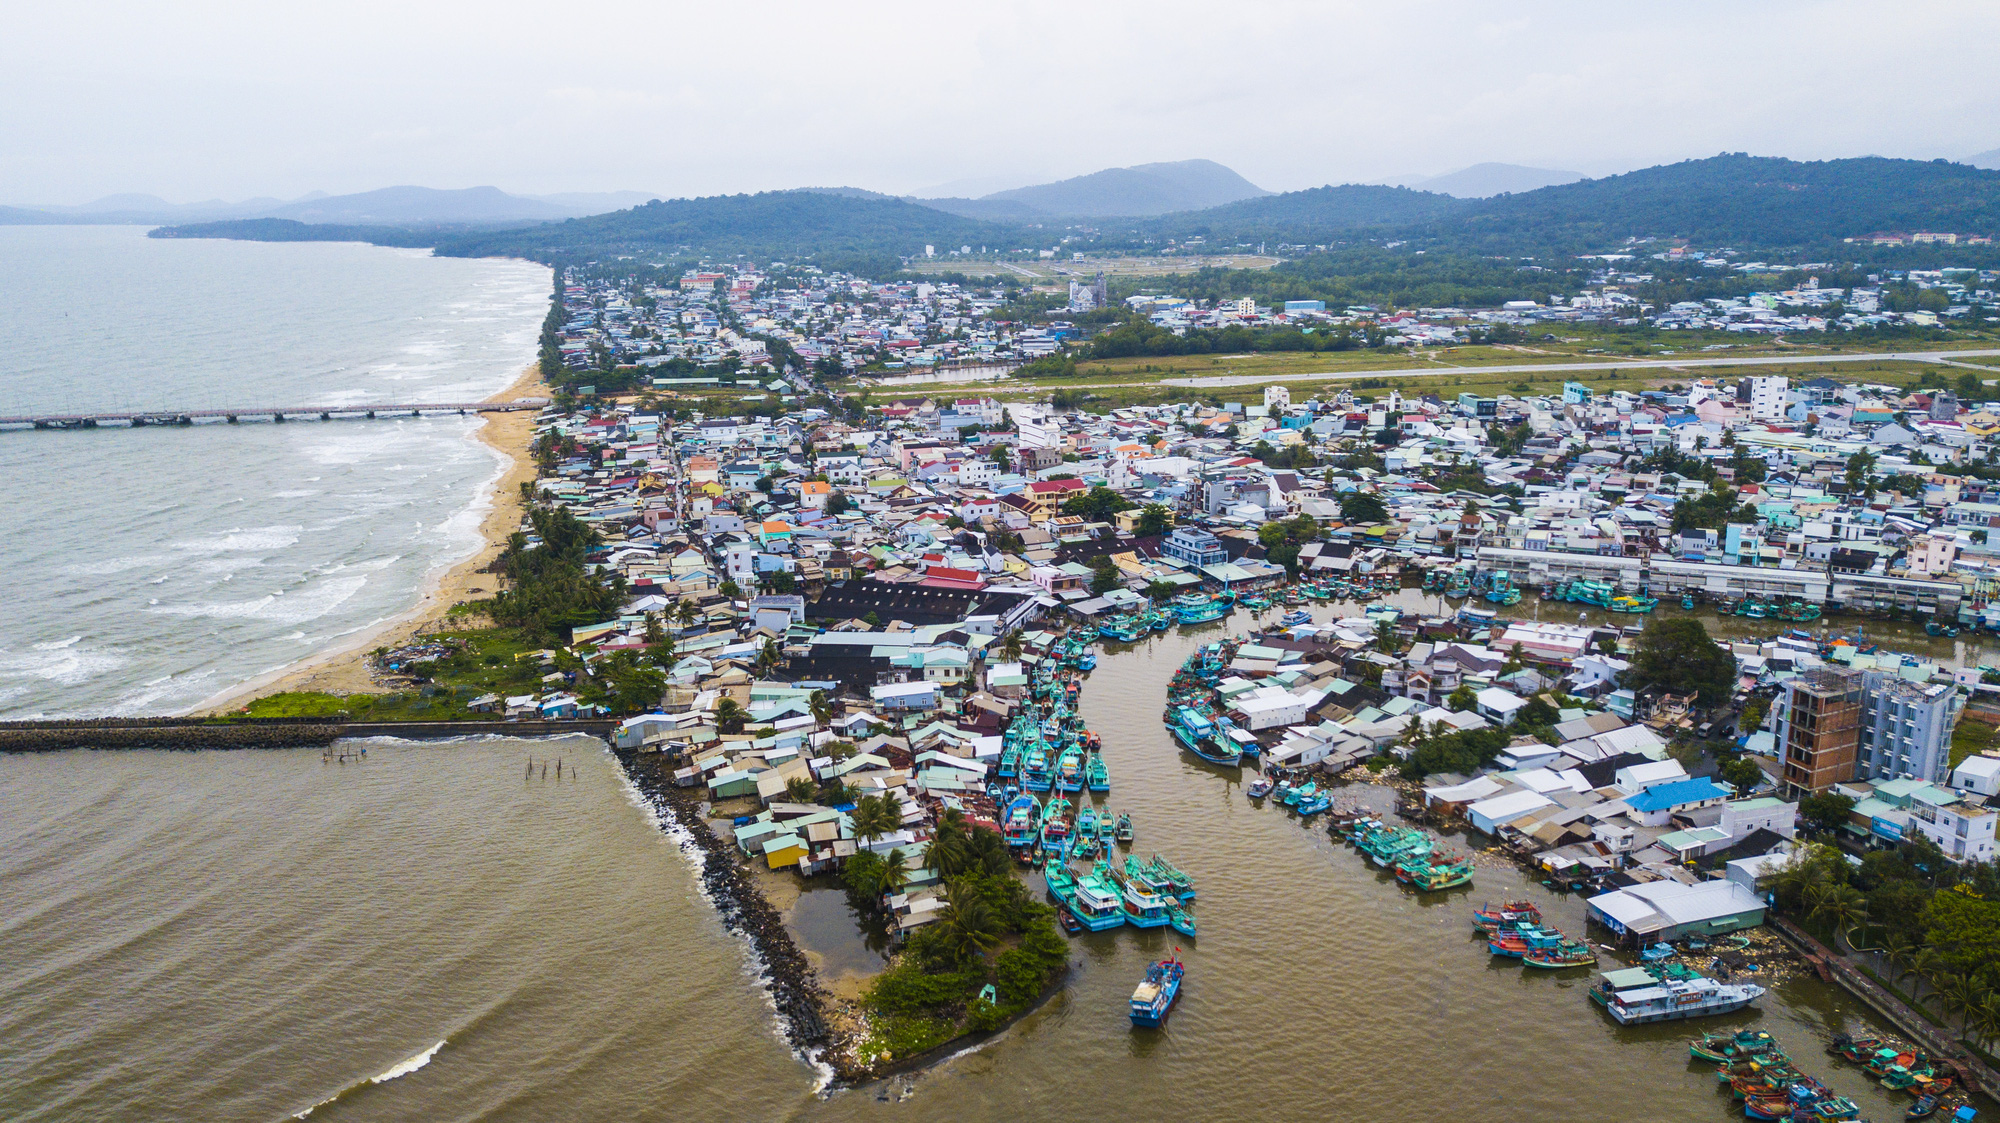 An aerial photo of Duong Dong Town, Phu Quoc Island off Kien Giang Province, Vietnam. The island is being considered as a possible destination for welcoming international tourists to Vietnam following the novel coronavirus disease (COVID-19) pandemic. Photo: Quang Dinh / Tuoi Tre